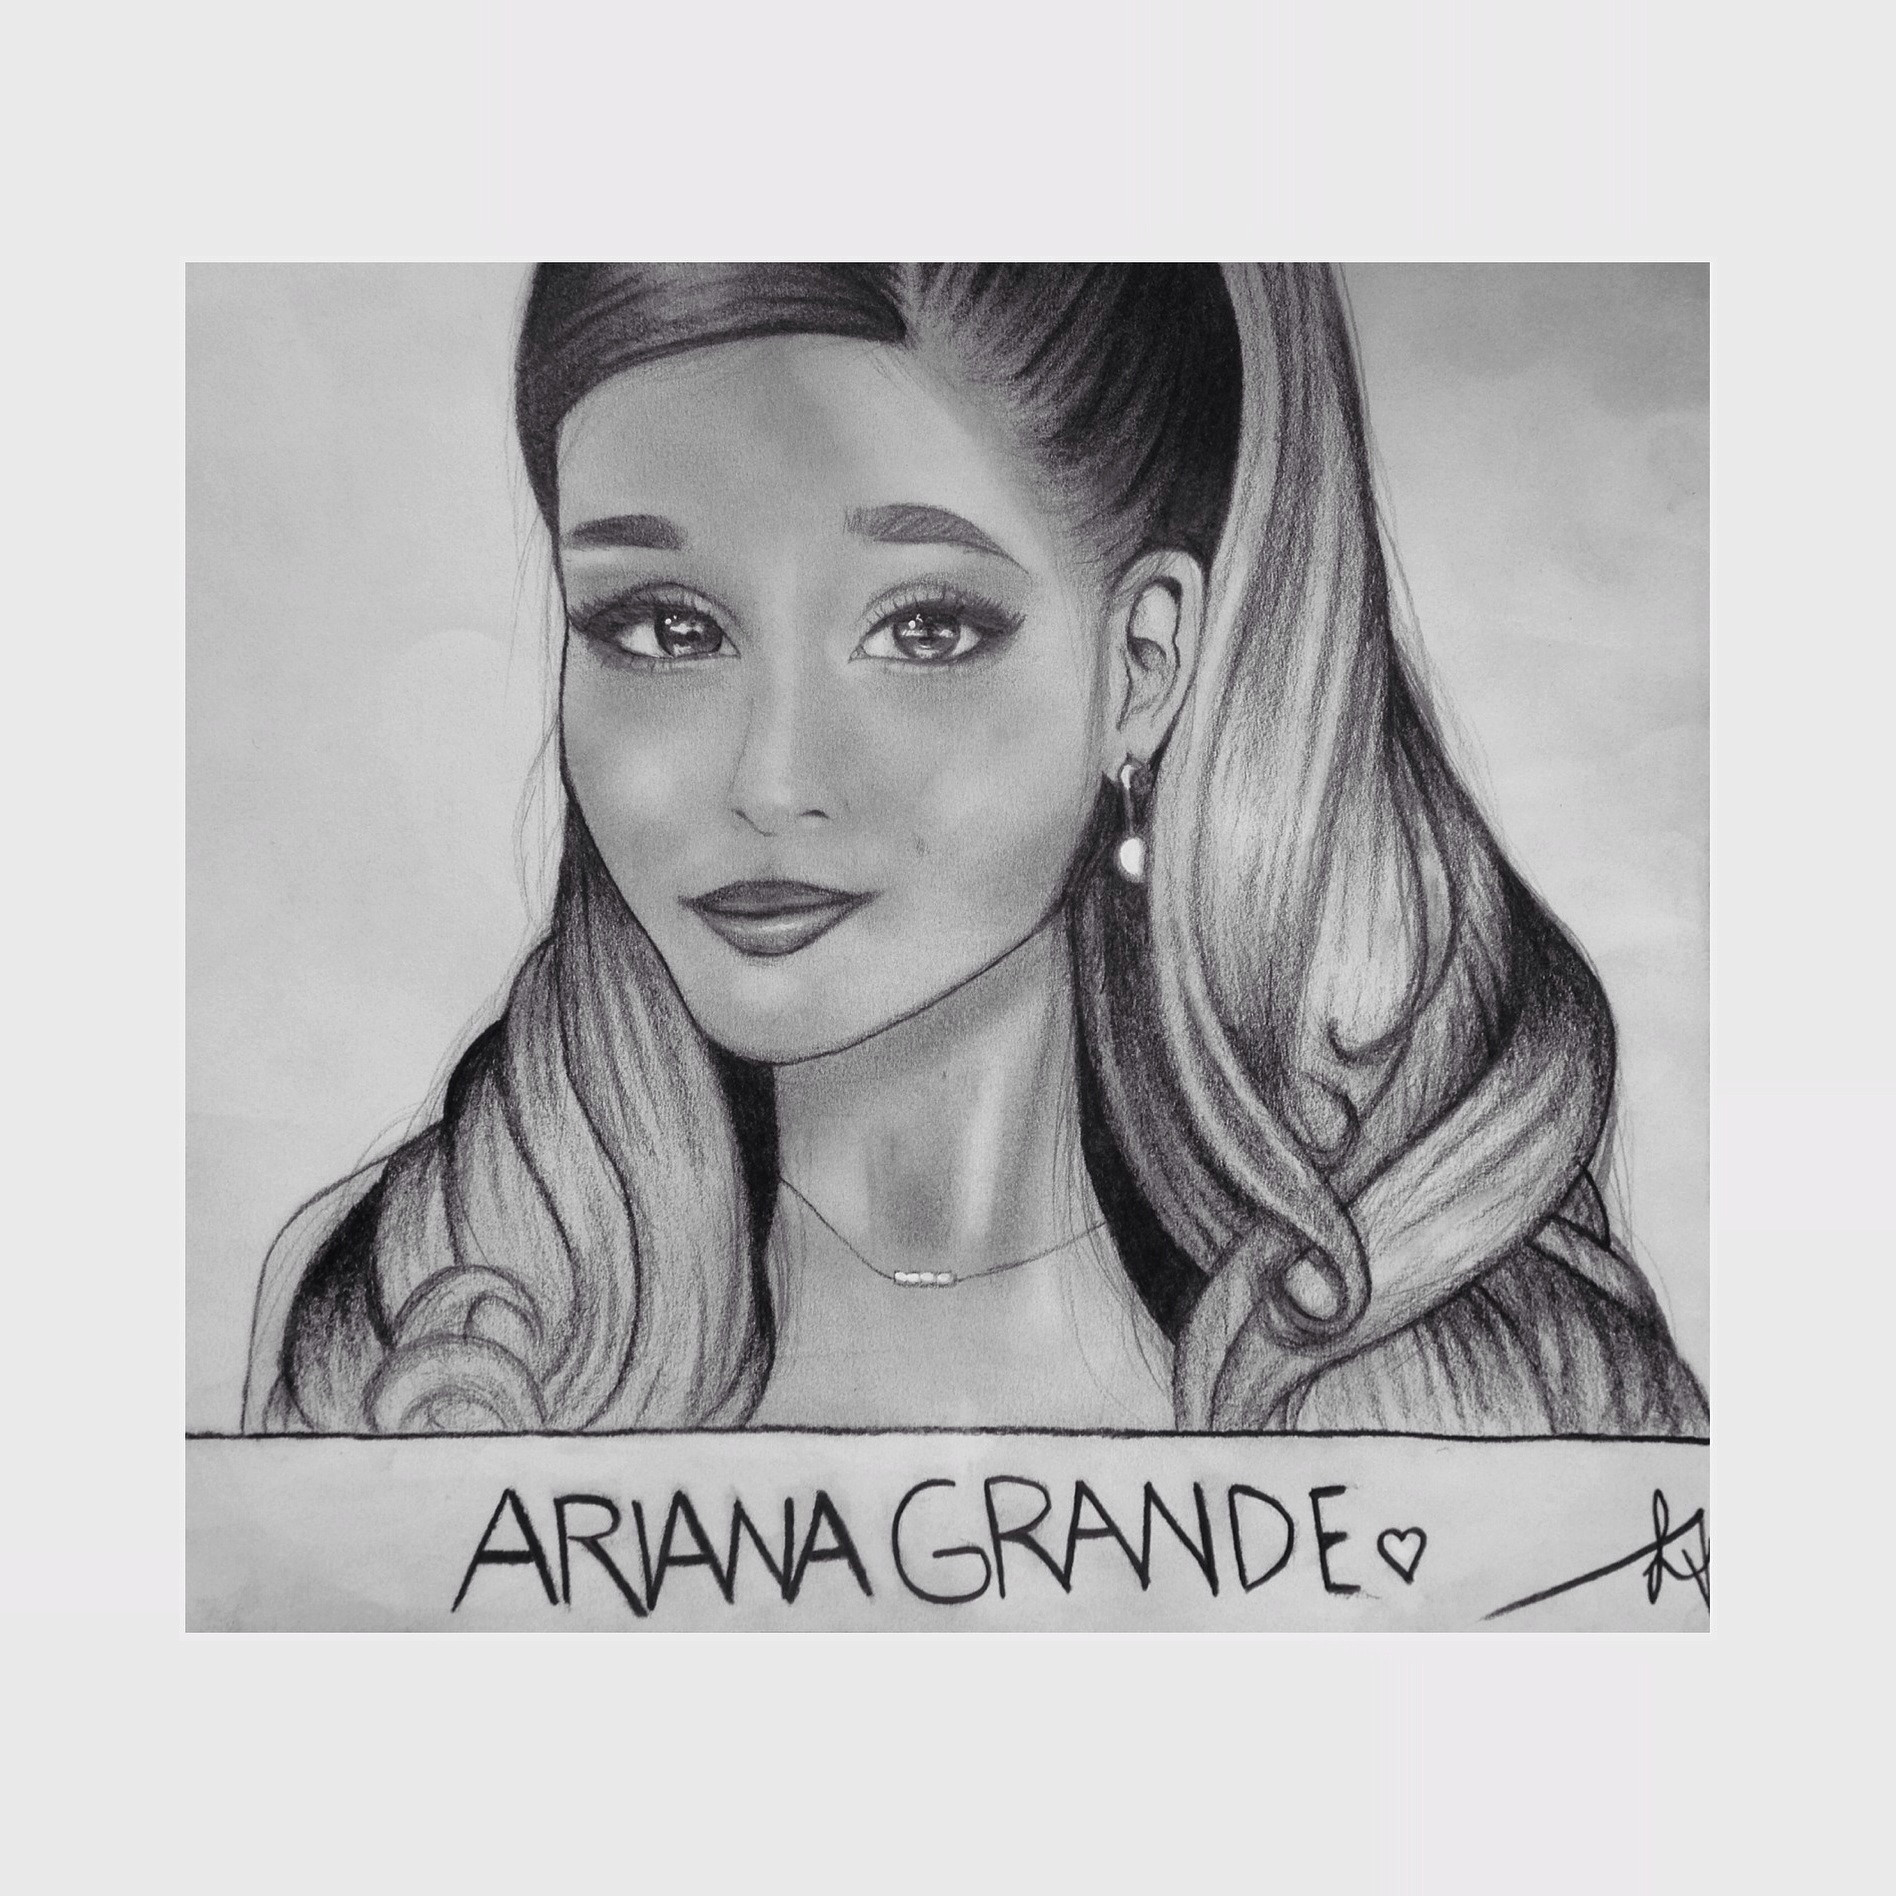 Download Thank You Next By Ariana Grande: Ariana Grande By Aizlynne On DeviantArt